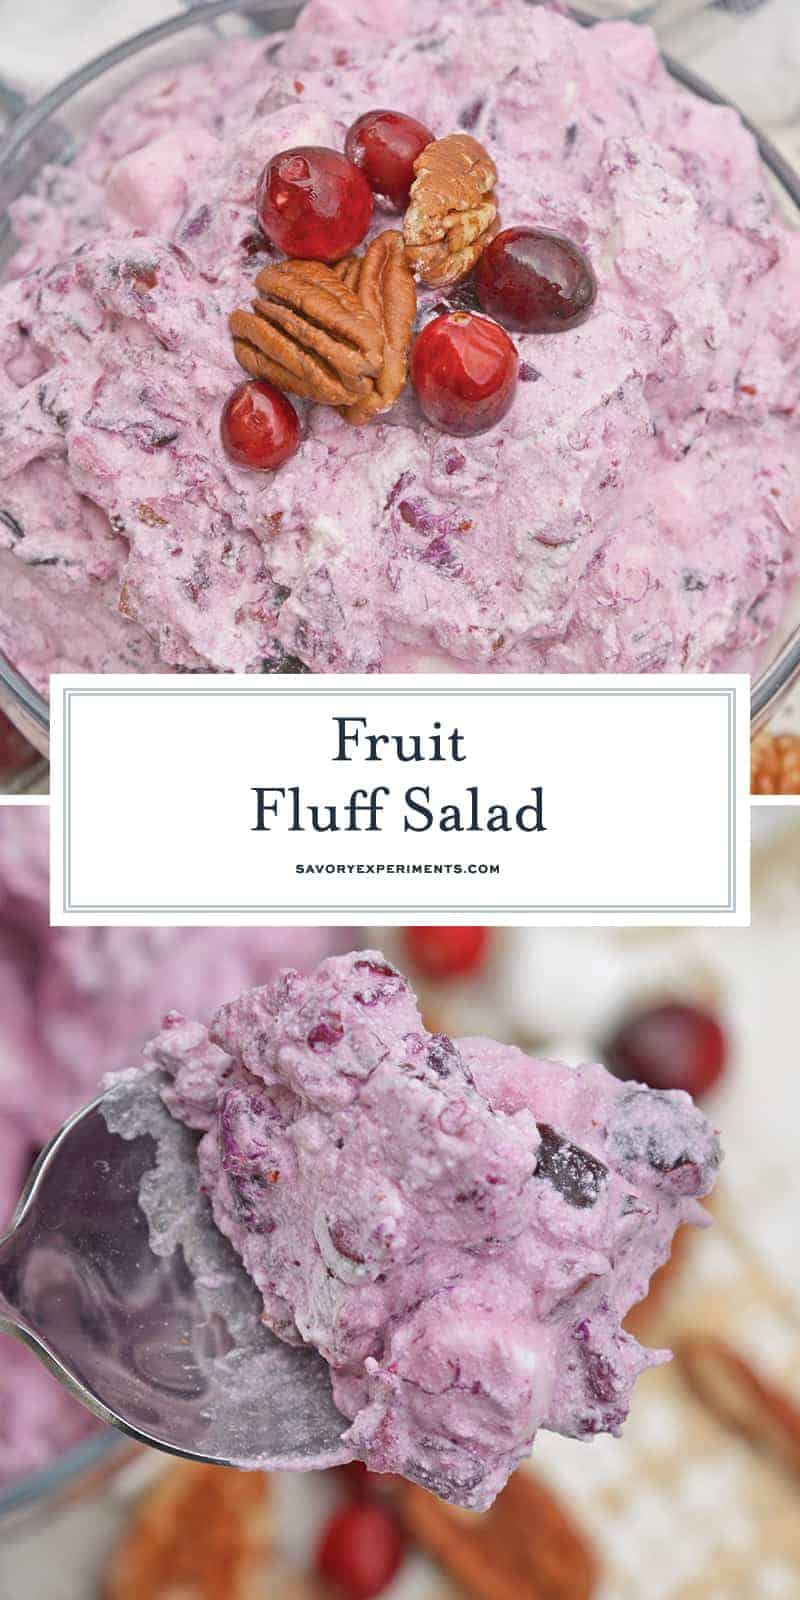 Fruit Fluff Salad is a classic side dish for the holidays combining Cherry Fluff, Pineapple Fluff and Cranberry Fluff Salad into one!#fruitfluffsalad #fluffsaladrecipe www.savoryexperiments.com